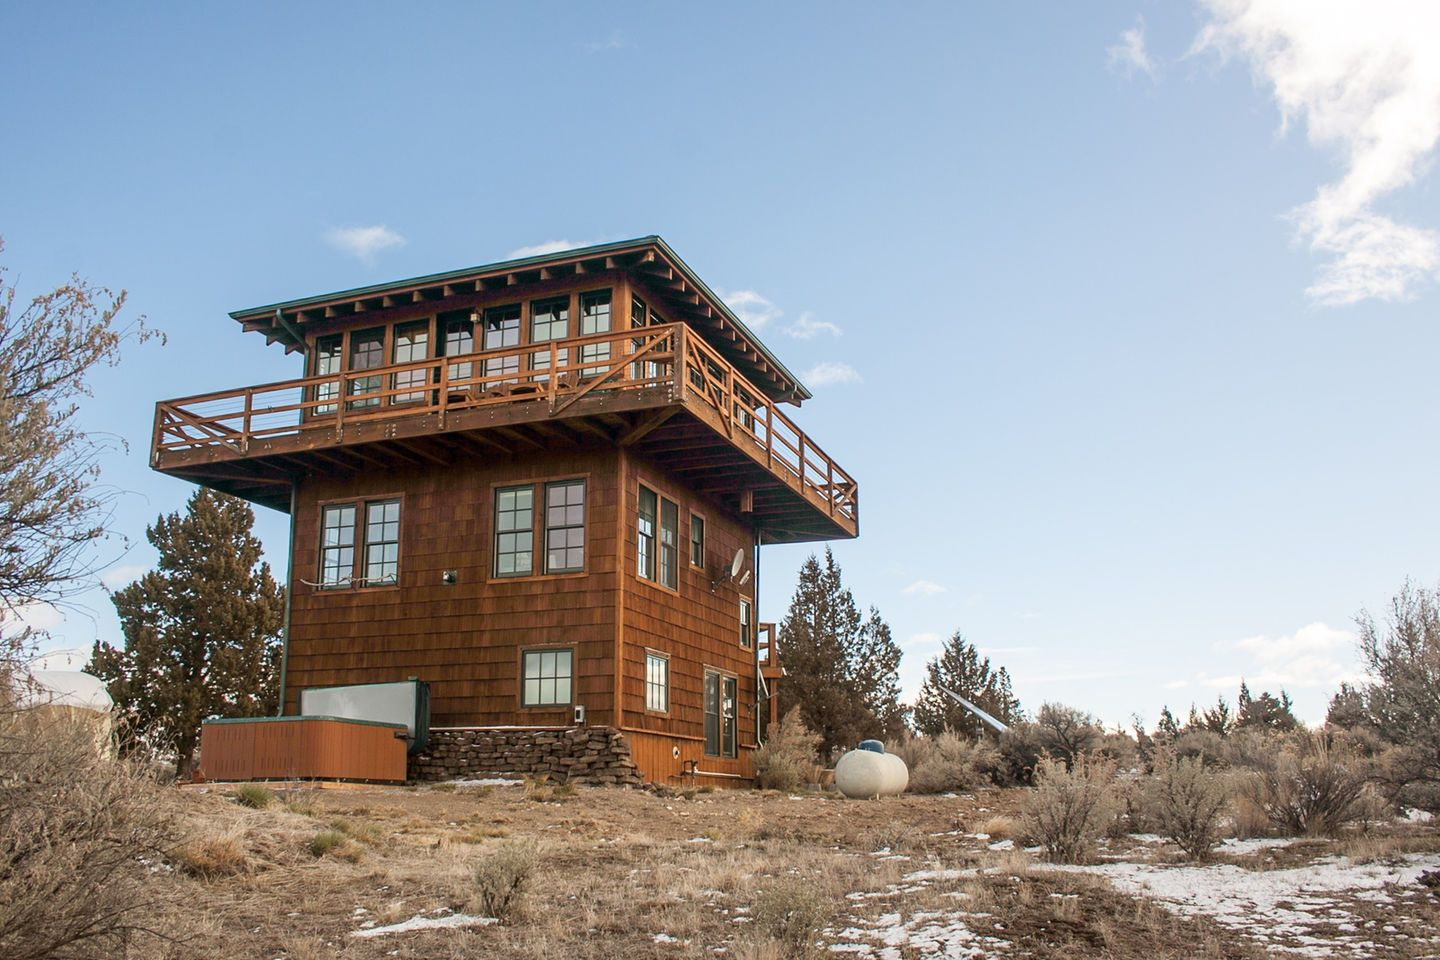 1440 215 960 In Forest Fire Lookout Tower House In 2020